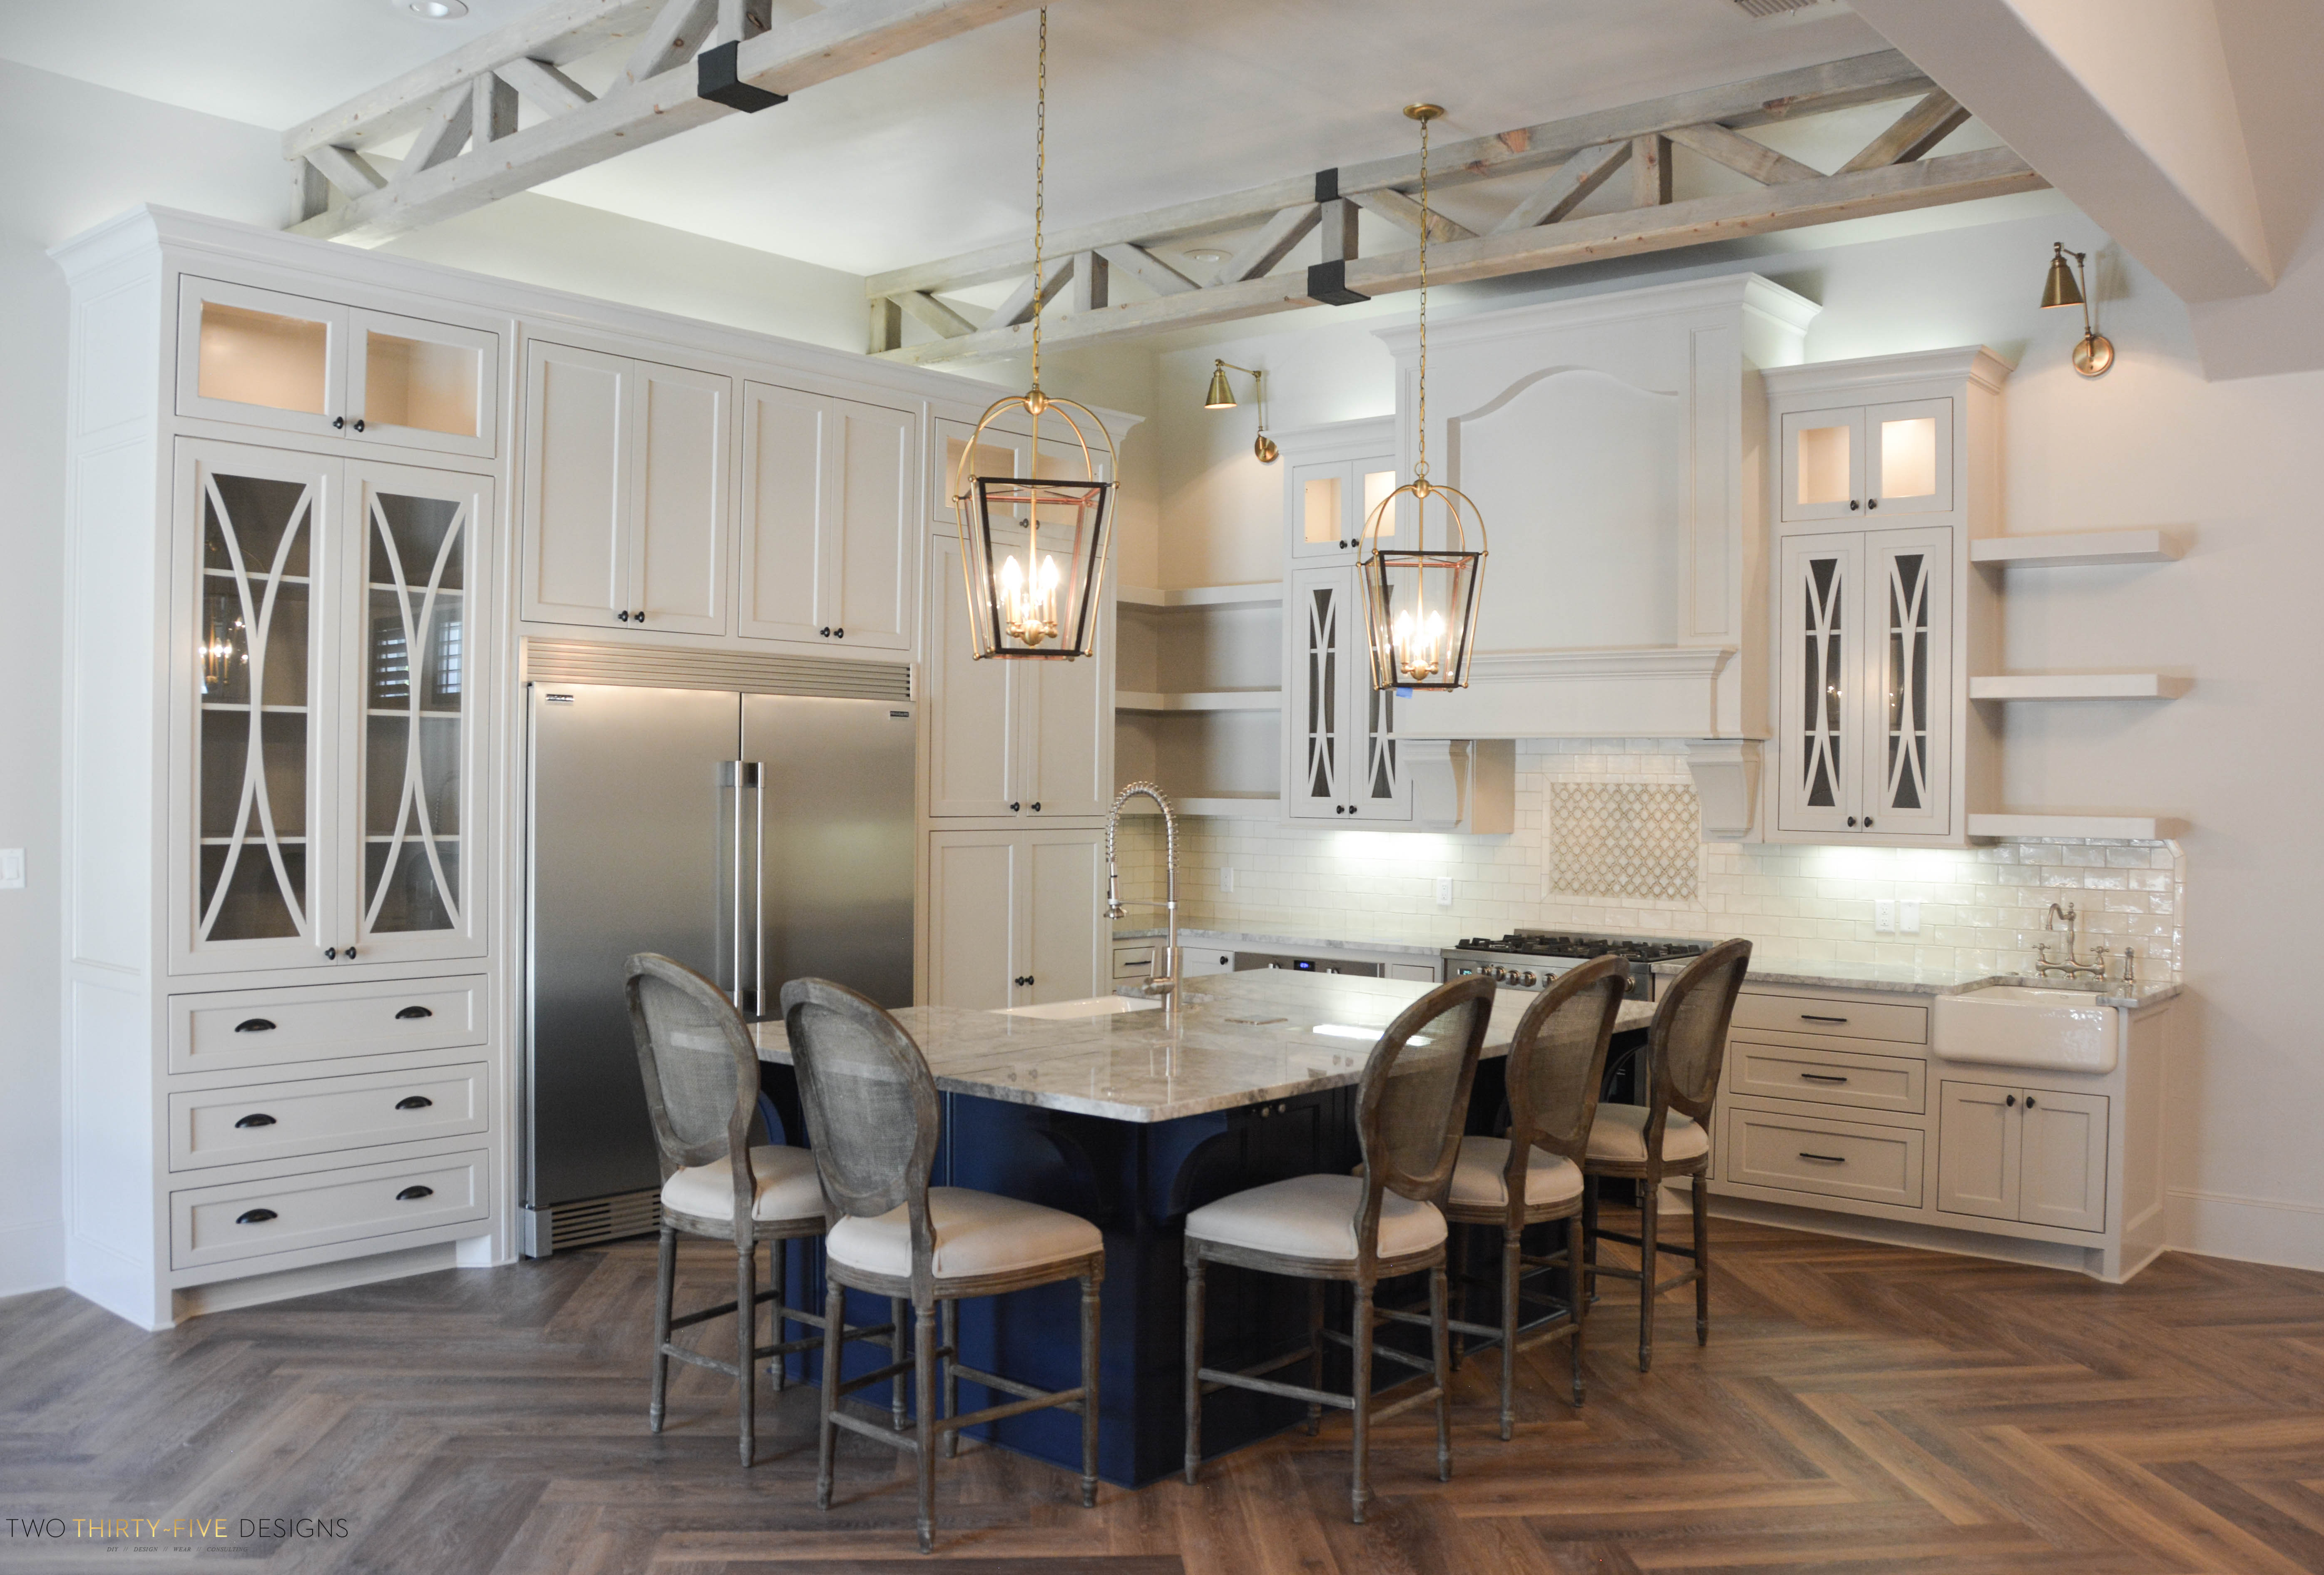 French Rustic Cottage By Two Thirty~Five Designs